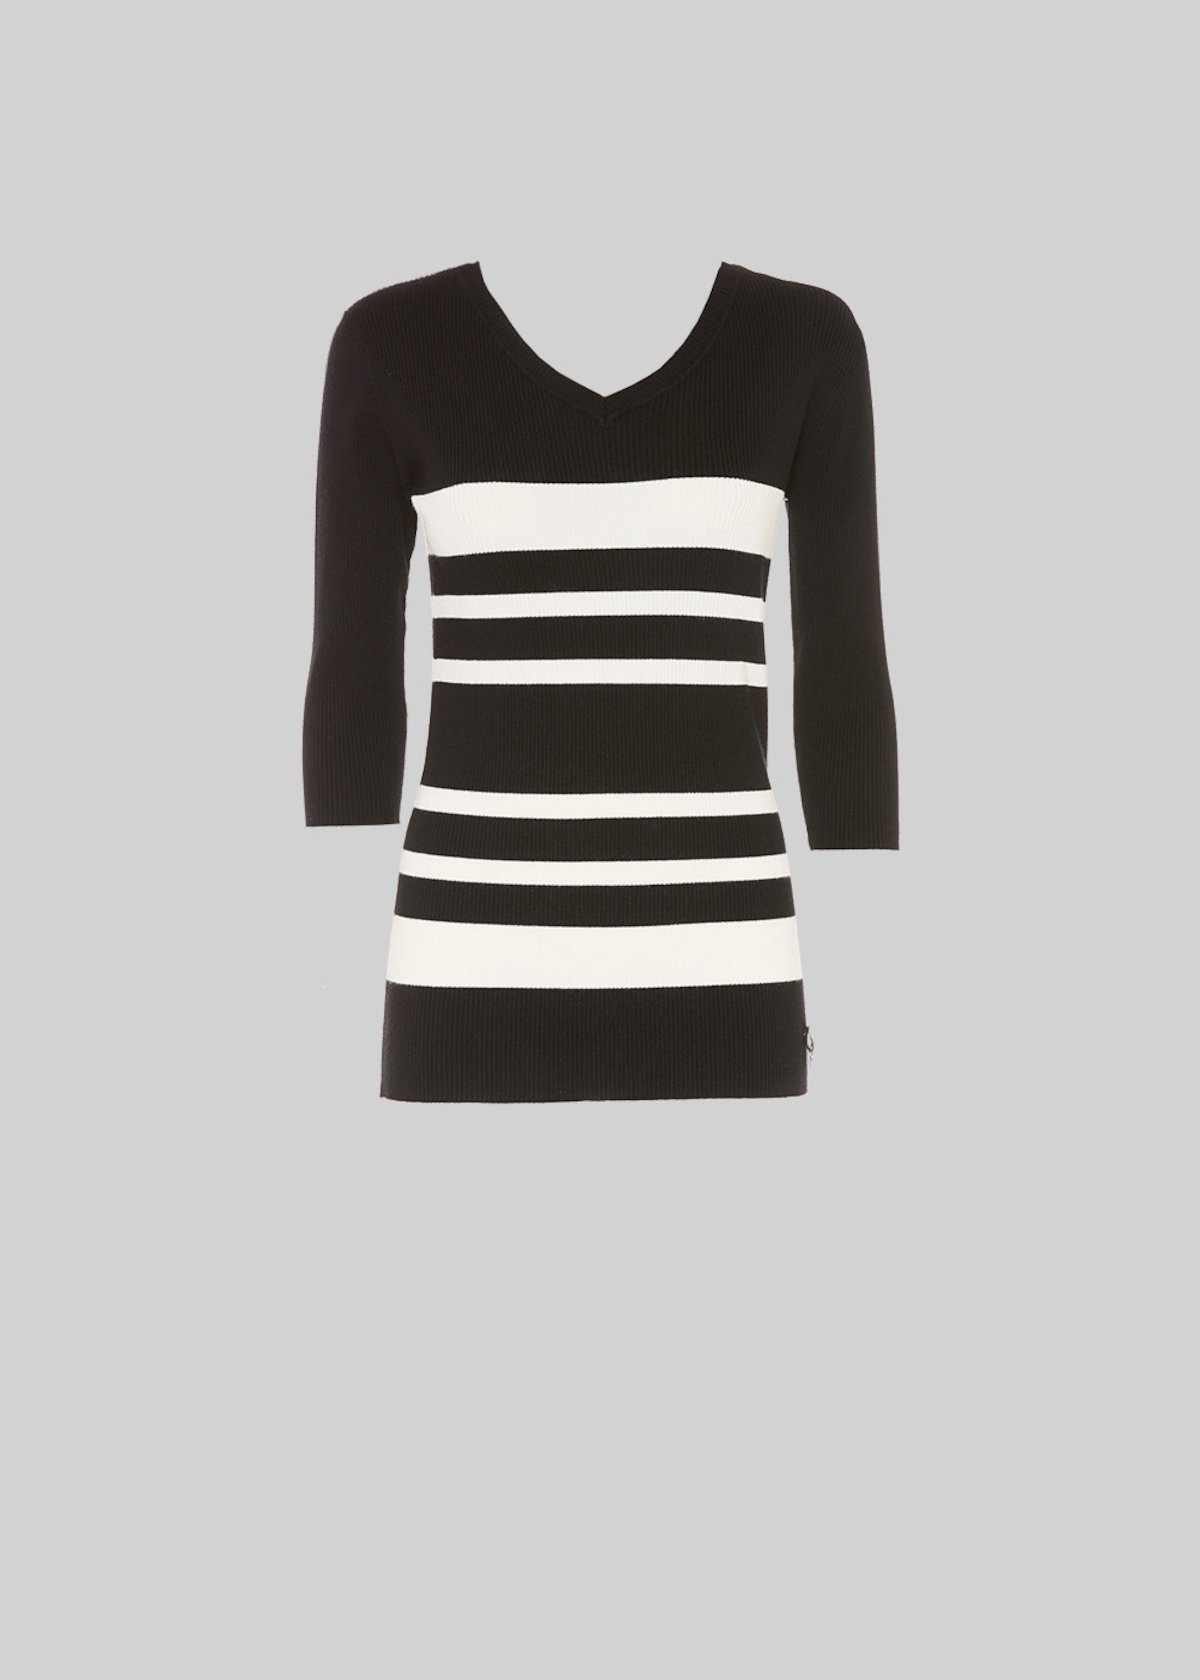 Maglia Michael stripe fantasy con scollo a V - Black / White Stripes - Donna - Immagine categoria